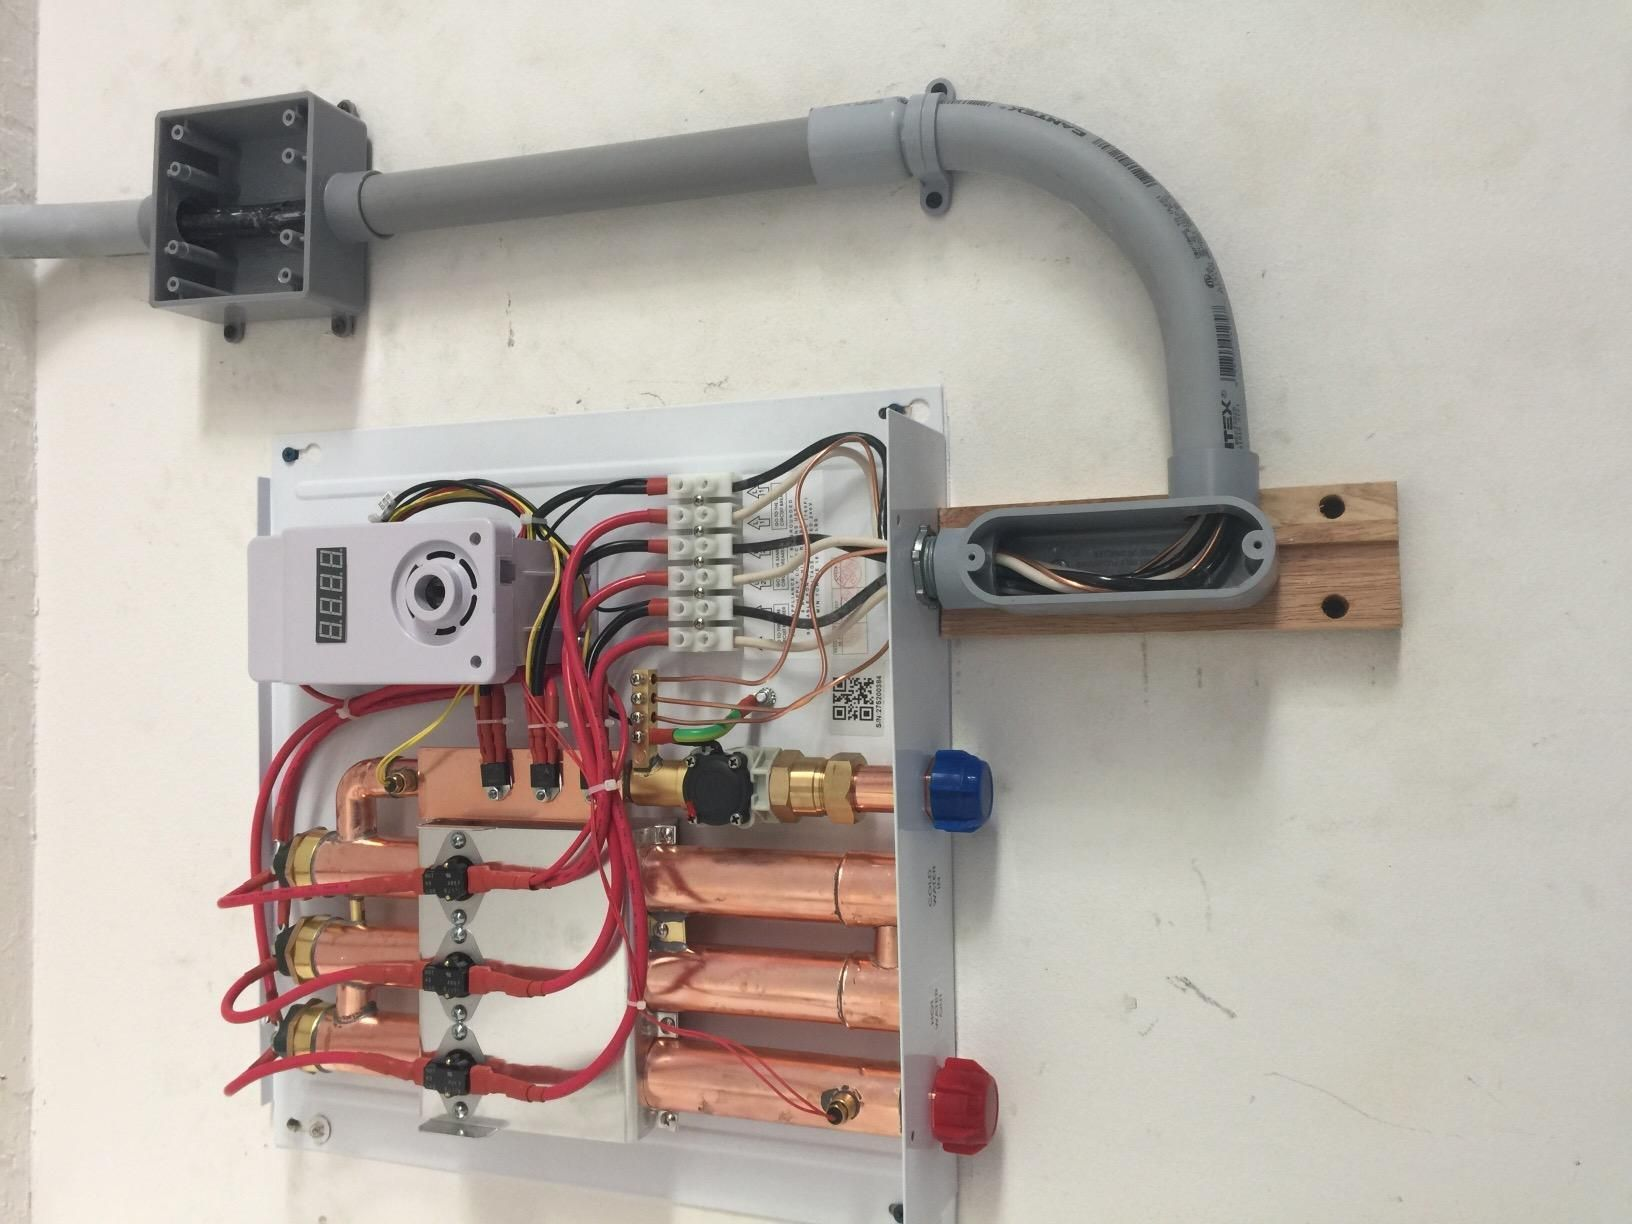 hight resolution of prior to purchase and installation please verify this model is the rights size for your hot water needs and electrical requirements